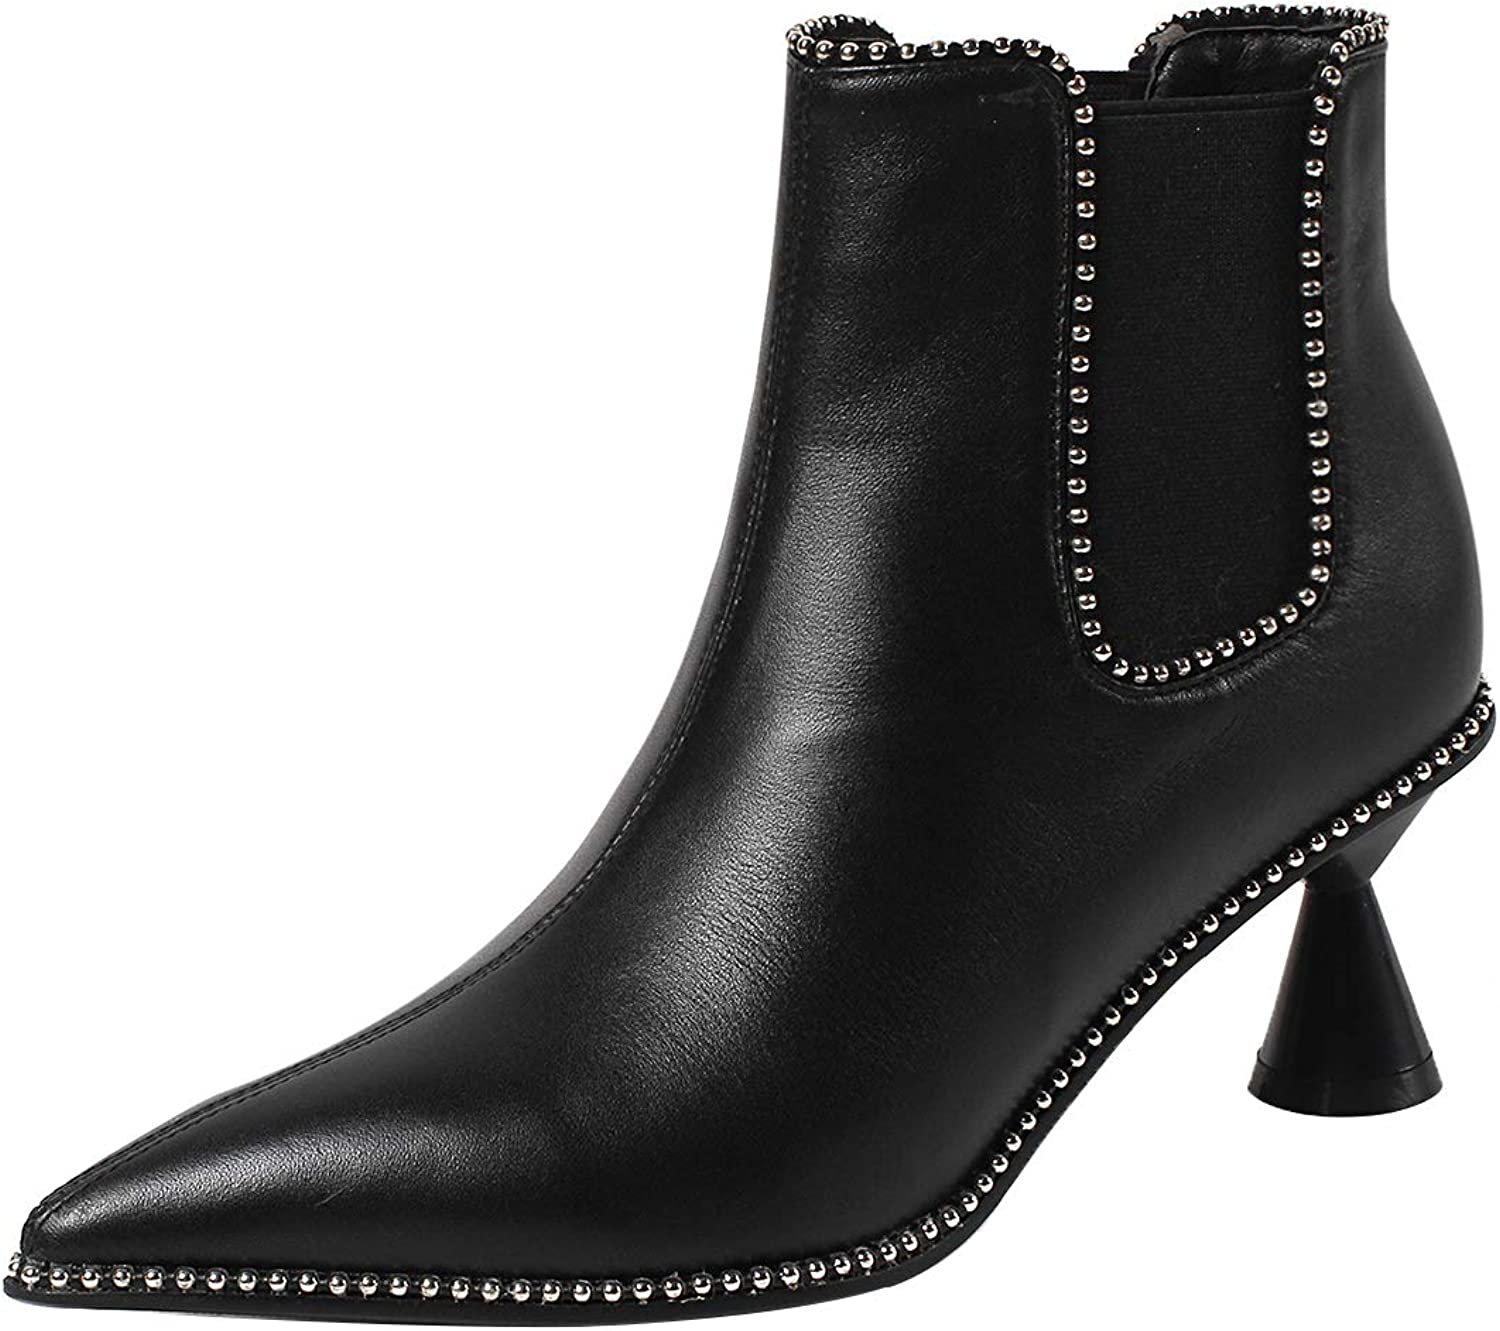 Eithy Women's Shadop Stiletto Ankle-high Zipper Leather Boots